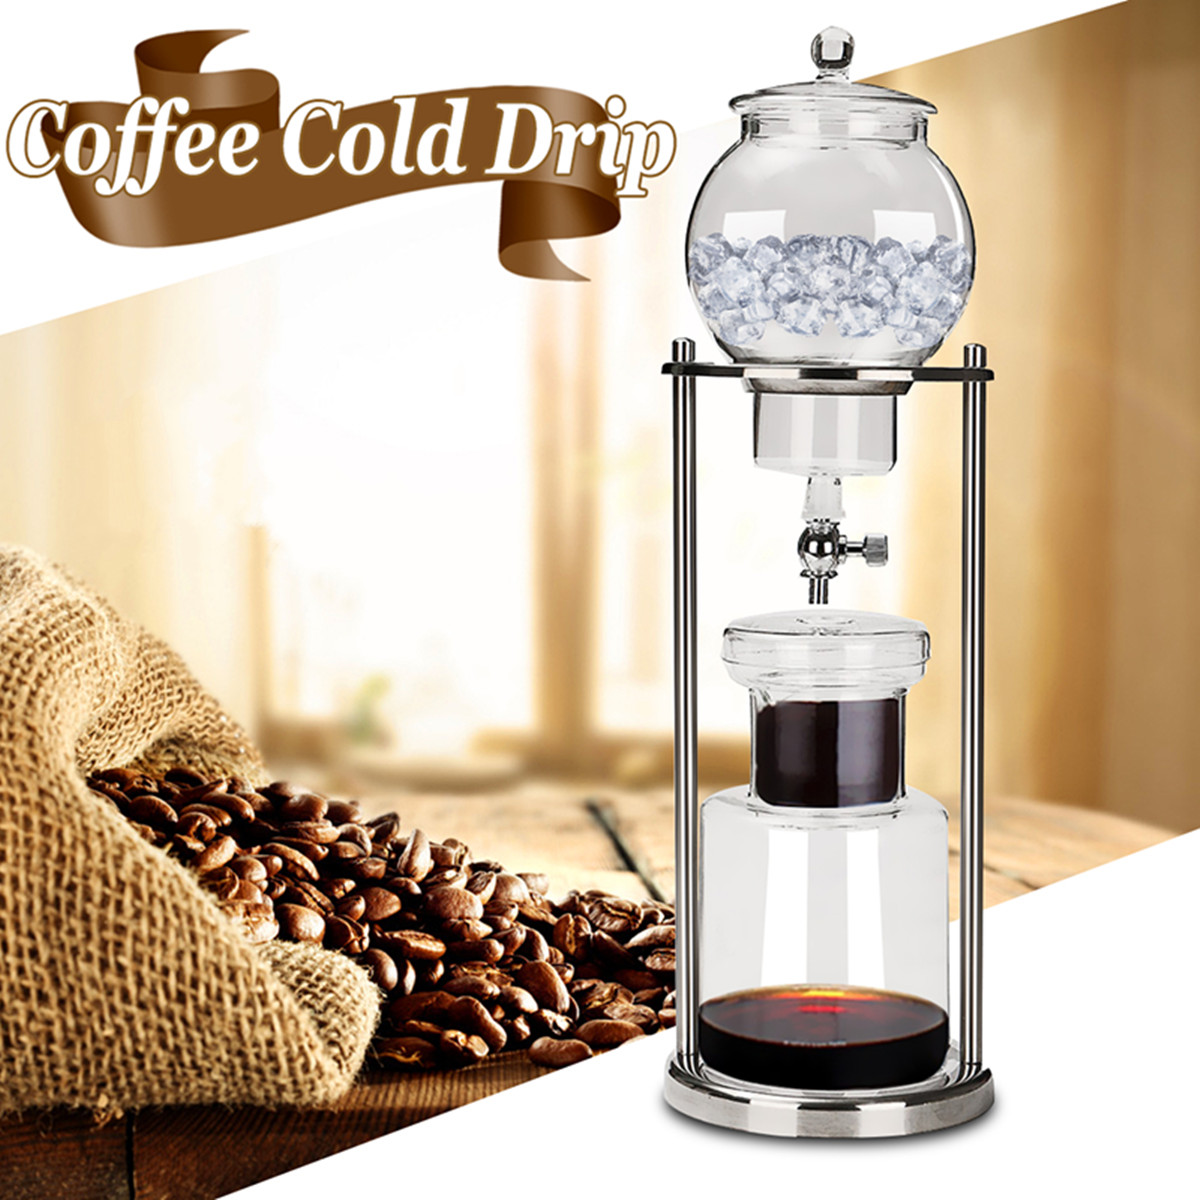 "1000ml New Dutch Coffee Cold Drip Water Drip Coffee Maker Serve For 10 stainless steel teamaker Cups 18x6"" Inch (diameter * height)"